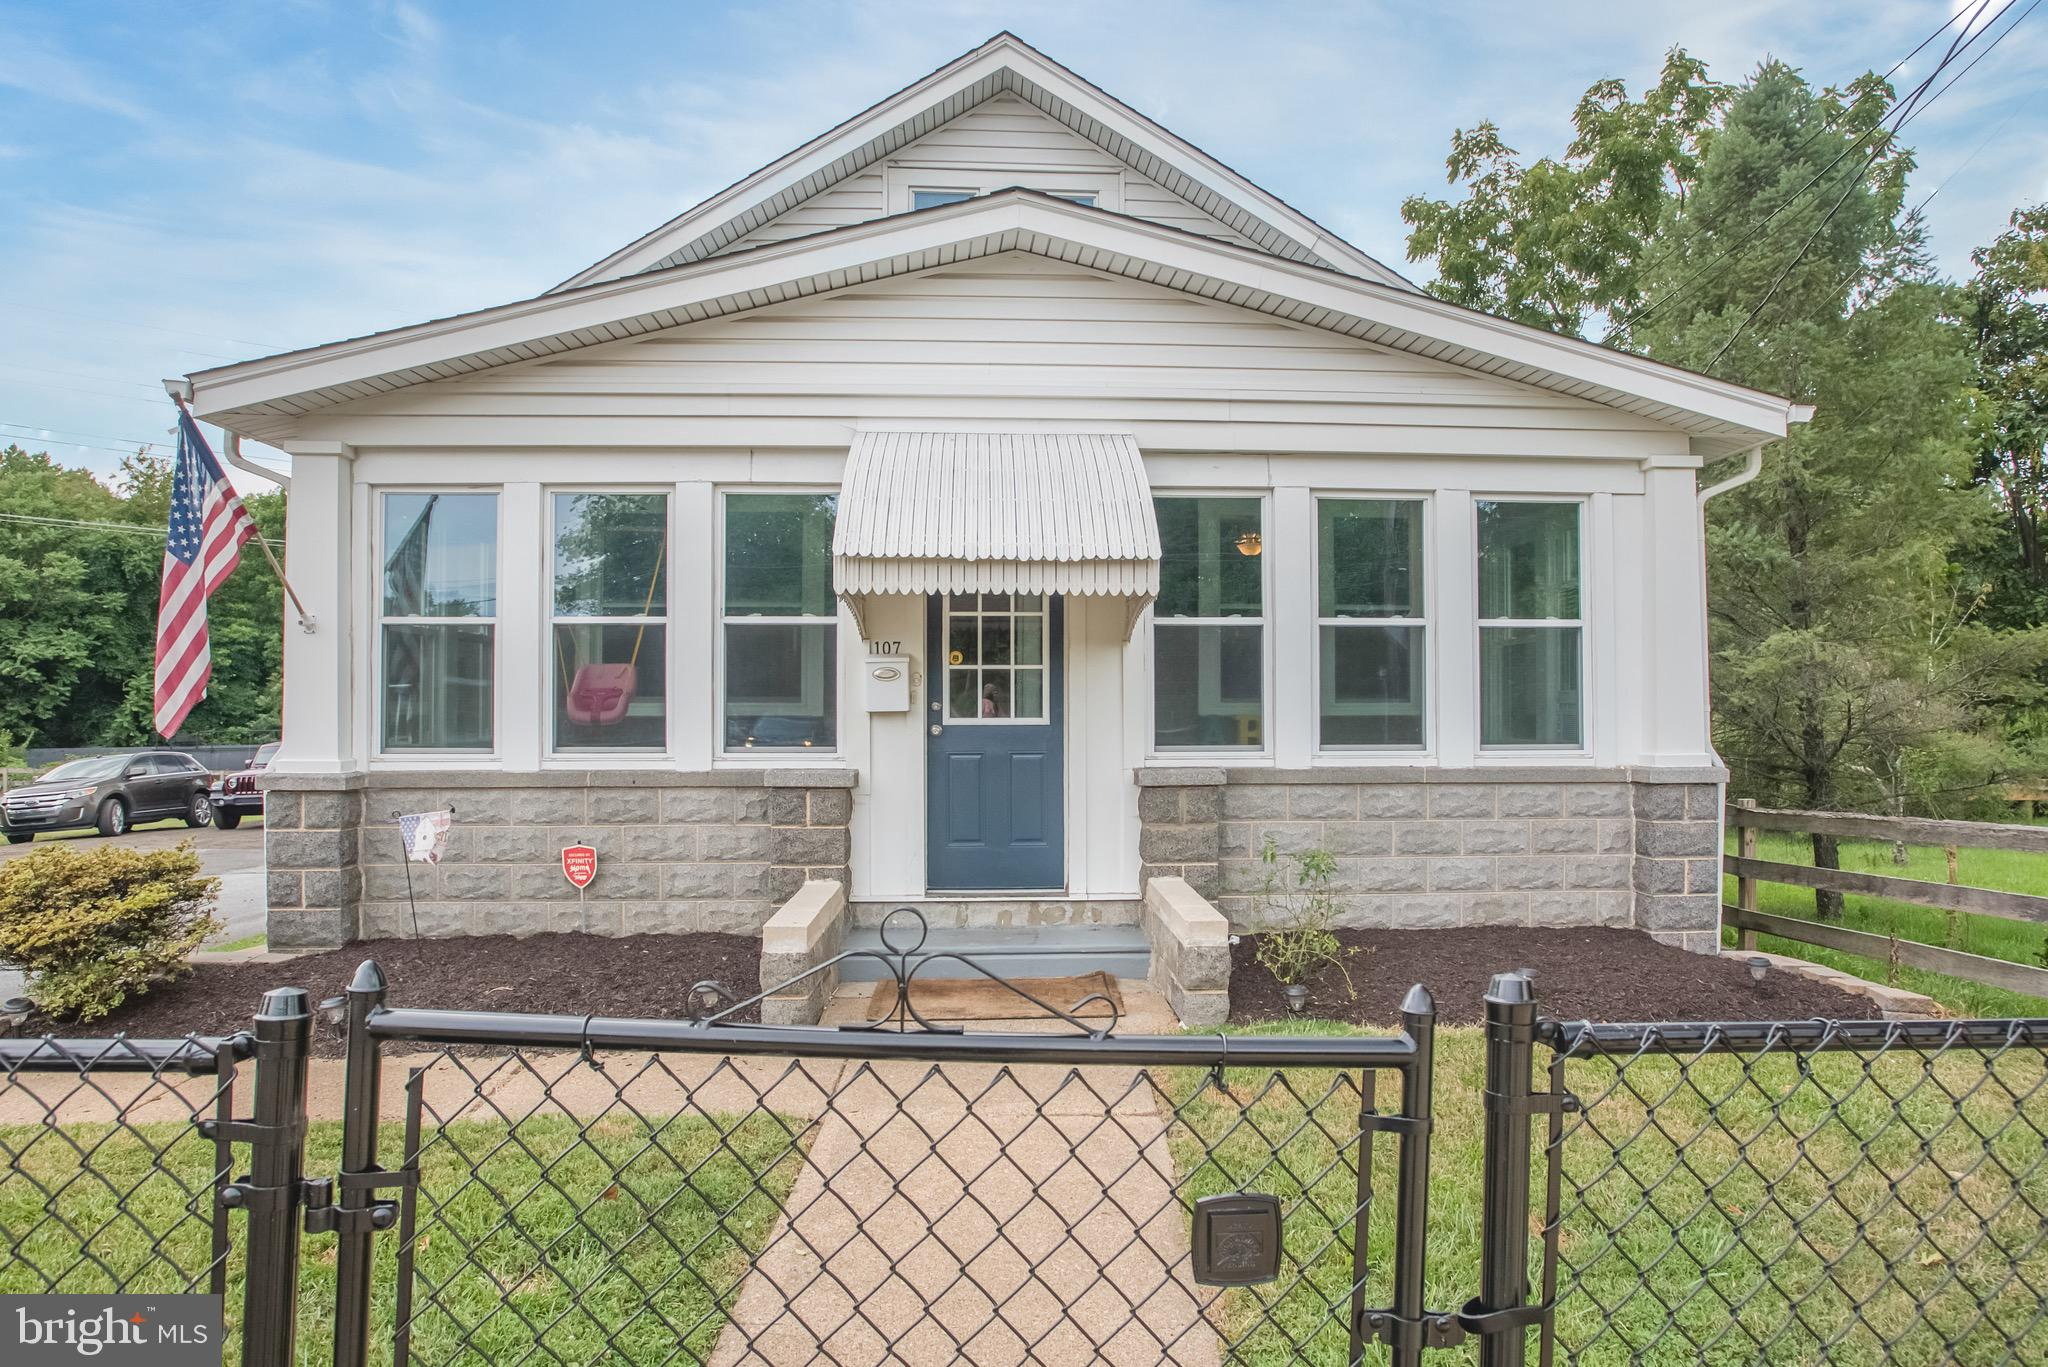 Motivated Sellers!! Don't miss your opportunity to own this house on a rare 19805 1 acre lot! Check out this centrally located property located in Elsmere!  In just a short drive you can be in Pike Creek, Trolley Square, 202 or prices corner. This house is turn key move in ready. New roof in 2019, New HVAC in 2016, updated kitchen and a full bathroom on each level of the house. Not to mention a fully finished basement with an extra two rooms that are currently being used as bedrooms. Picture yourself sitting out on the beautiful back patio warming up by the fire on a brisk Fall night. Contact listing agent with any questions! Garage As-Is.